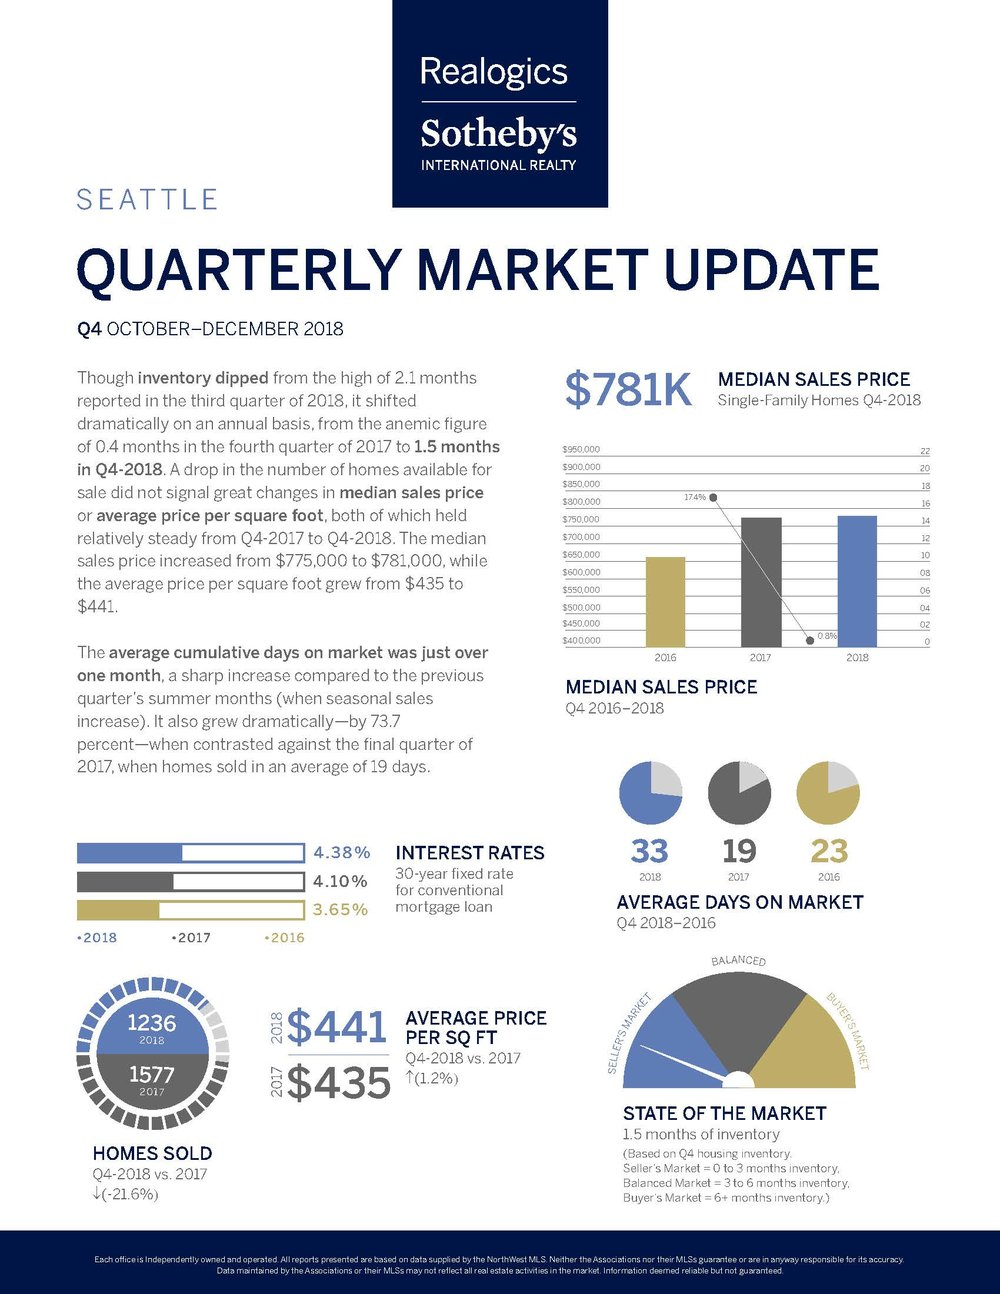 Seattle Single Family Q4 2018.jpg